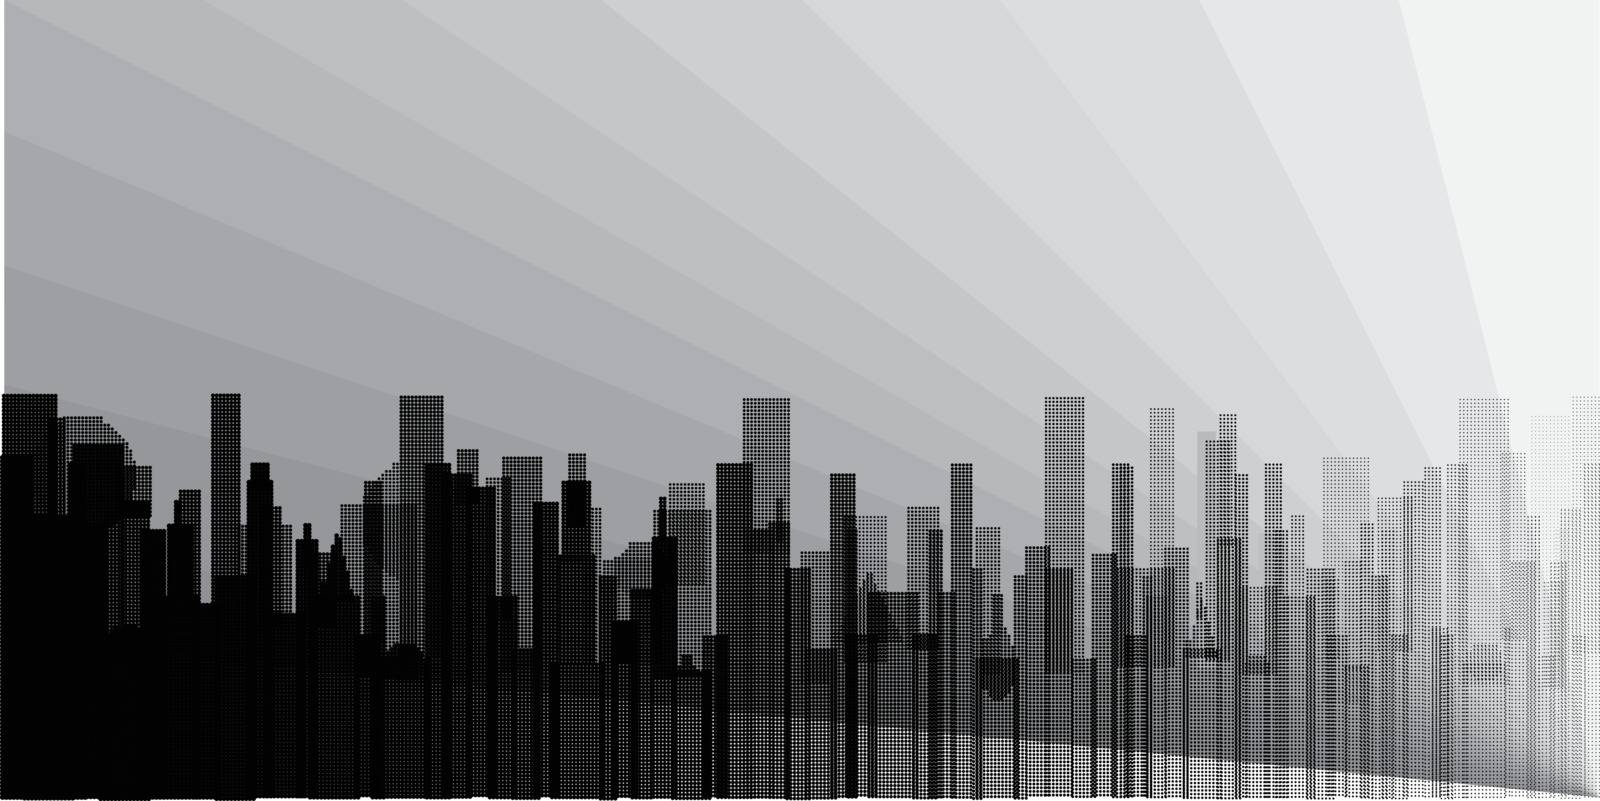 A grey cityscape with pollution shown in grey and silhouette.